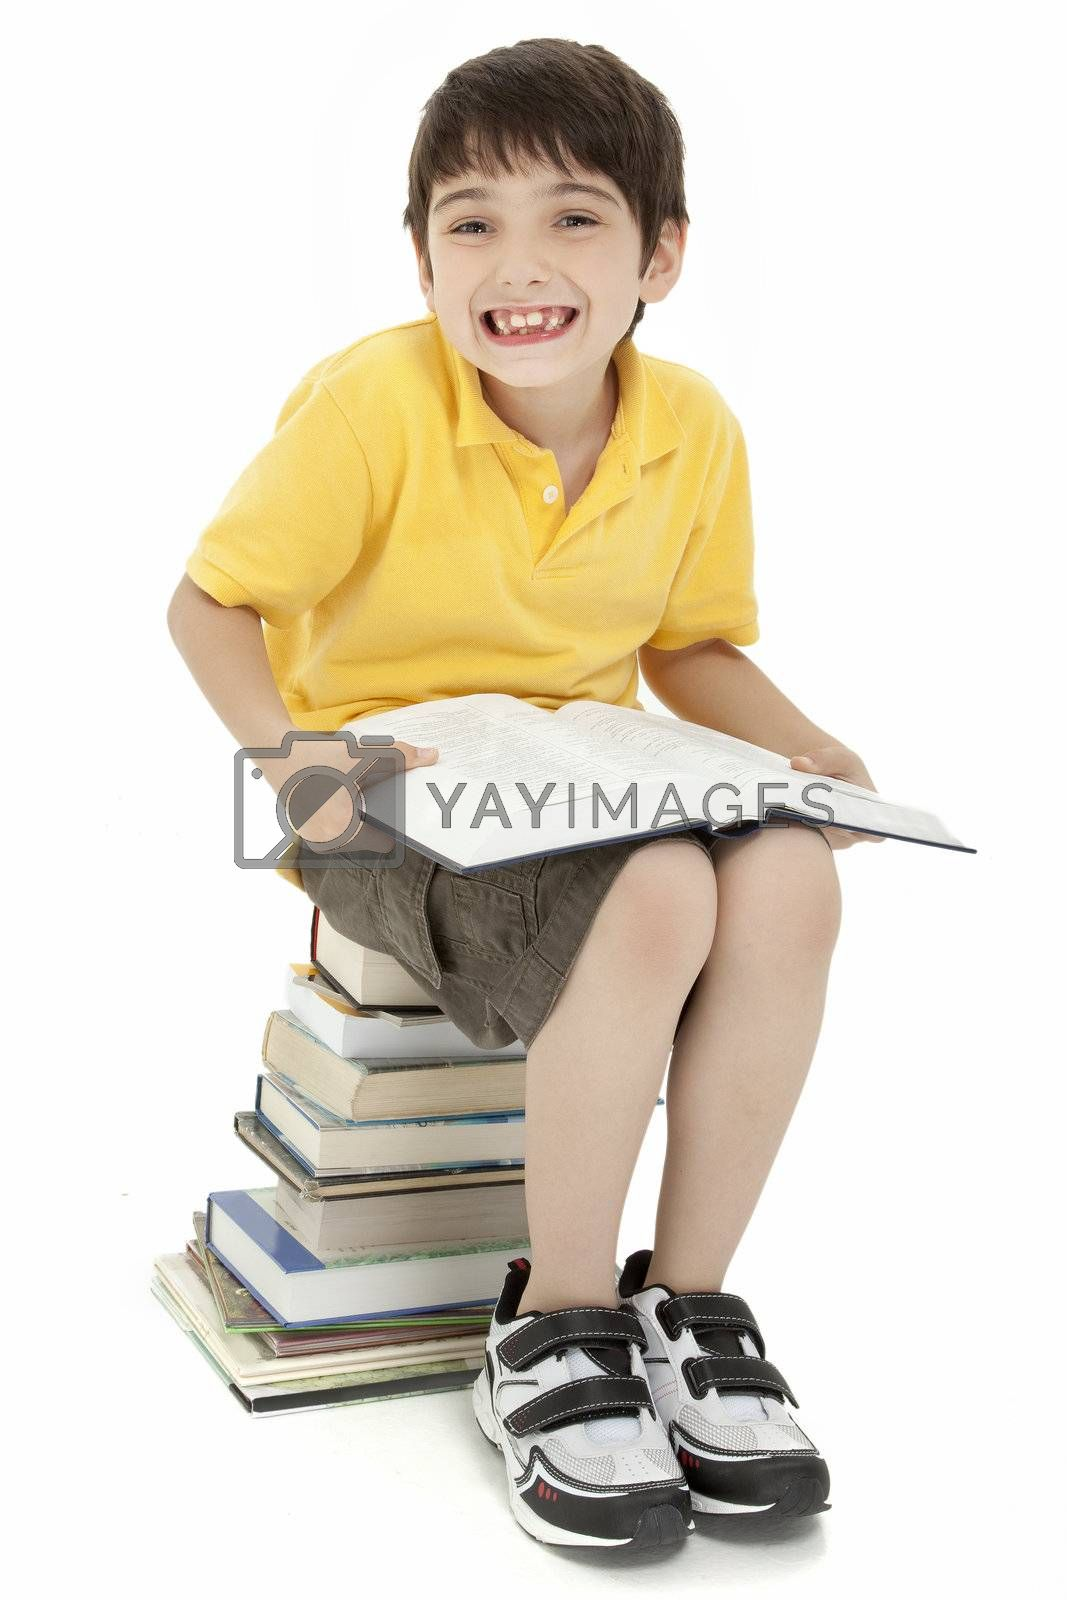 Excited elementary age school boy child sitting on stack of books reading.